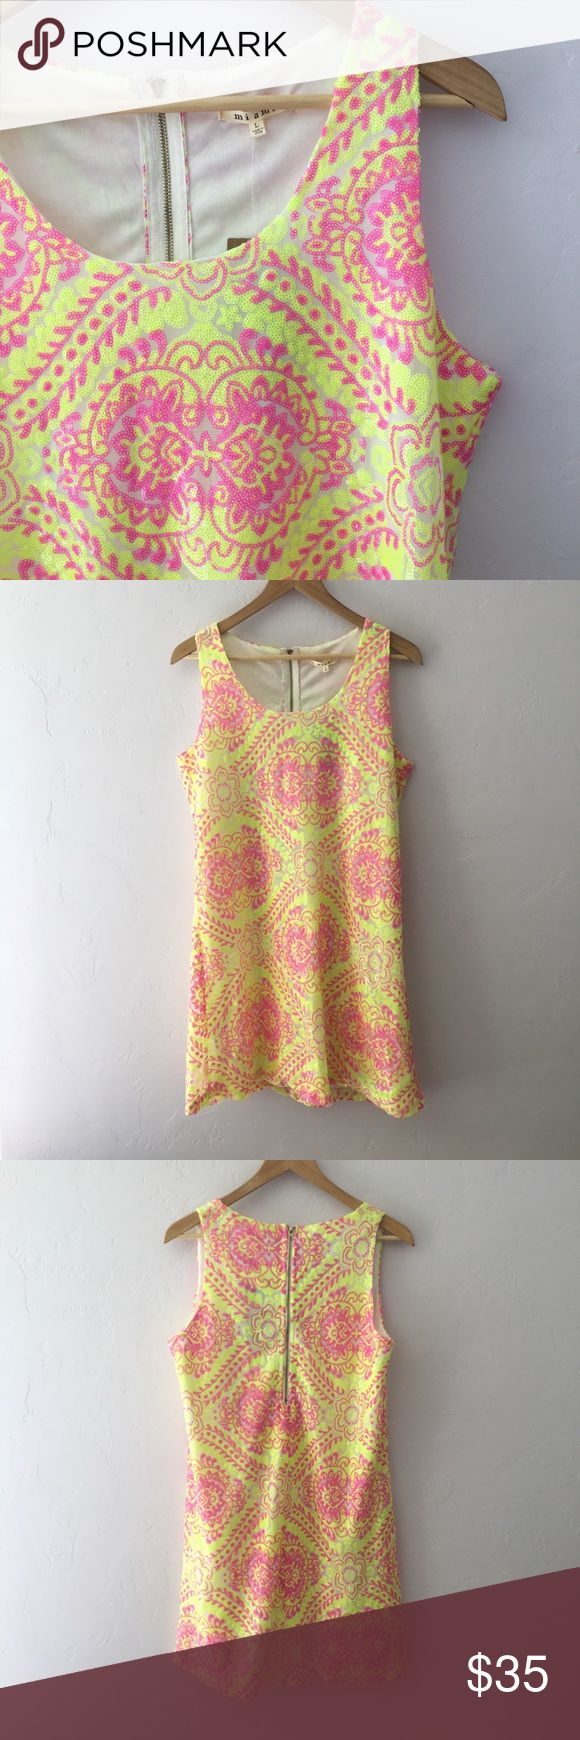 Francesca's Collections Miami Sequin Dress Lined Miami dress with pink and yellow sequins. Brand new with tags! No modeling. Francesca's Collections Dresses Mini